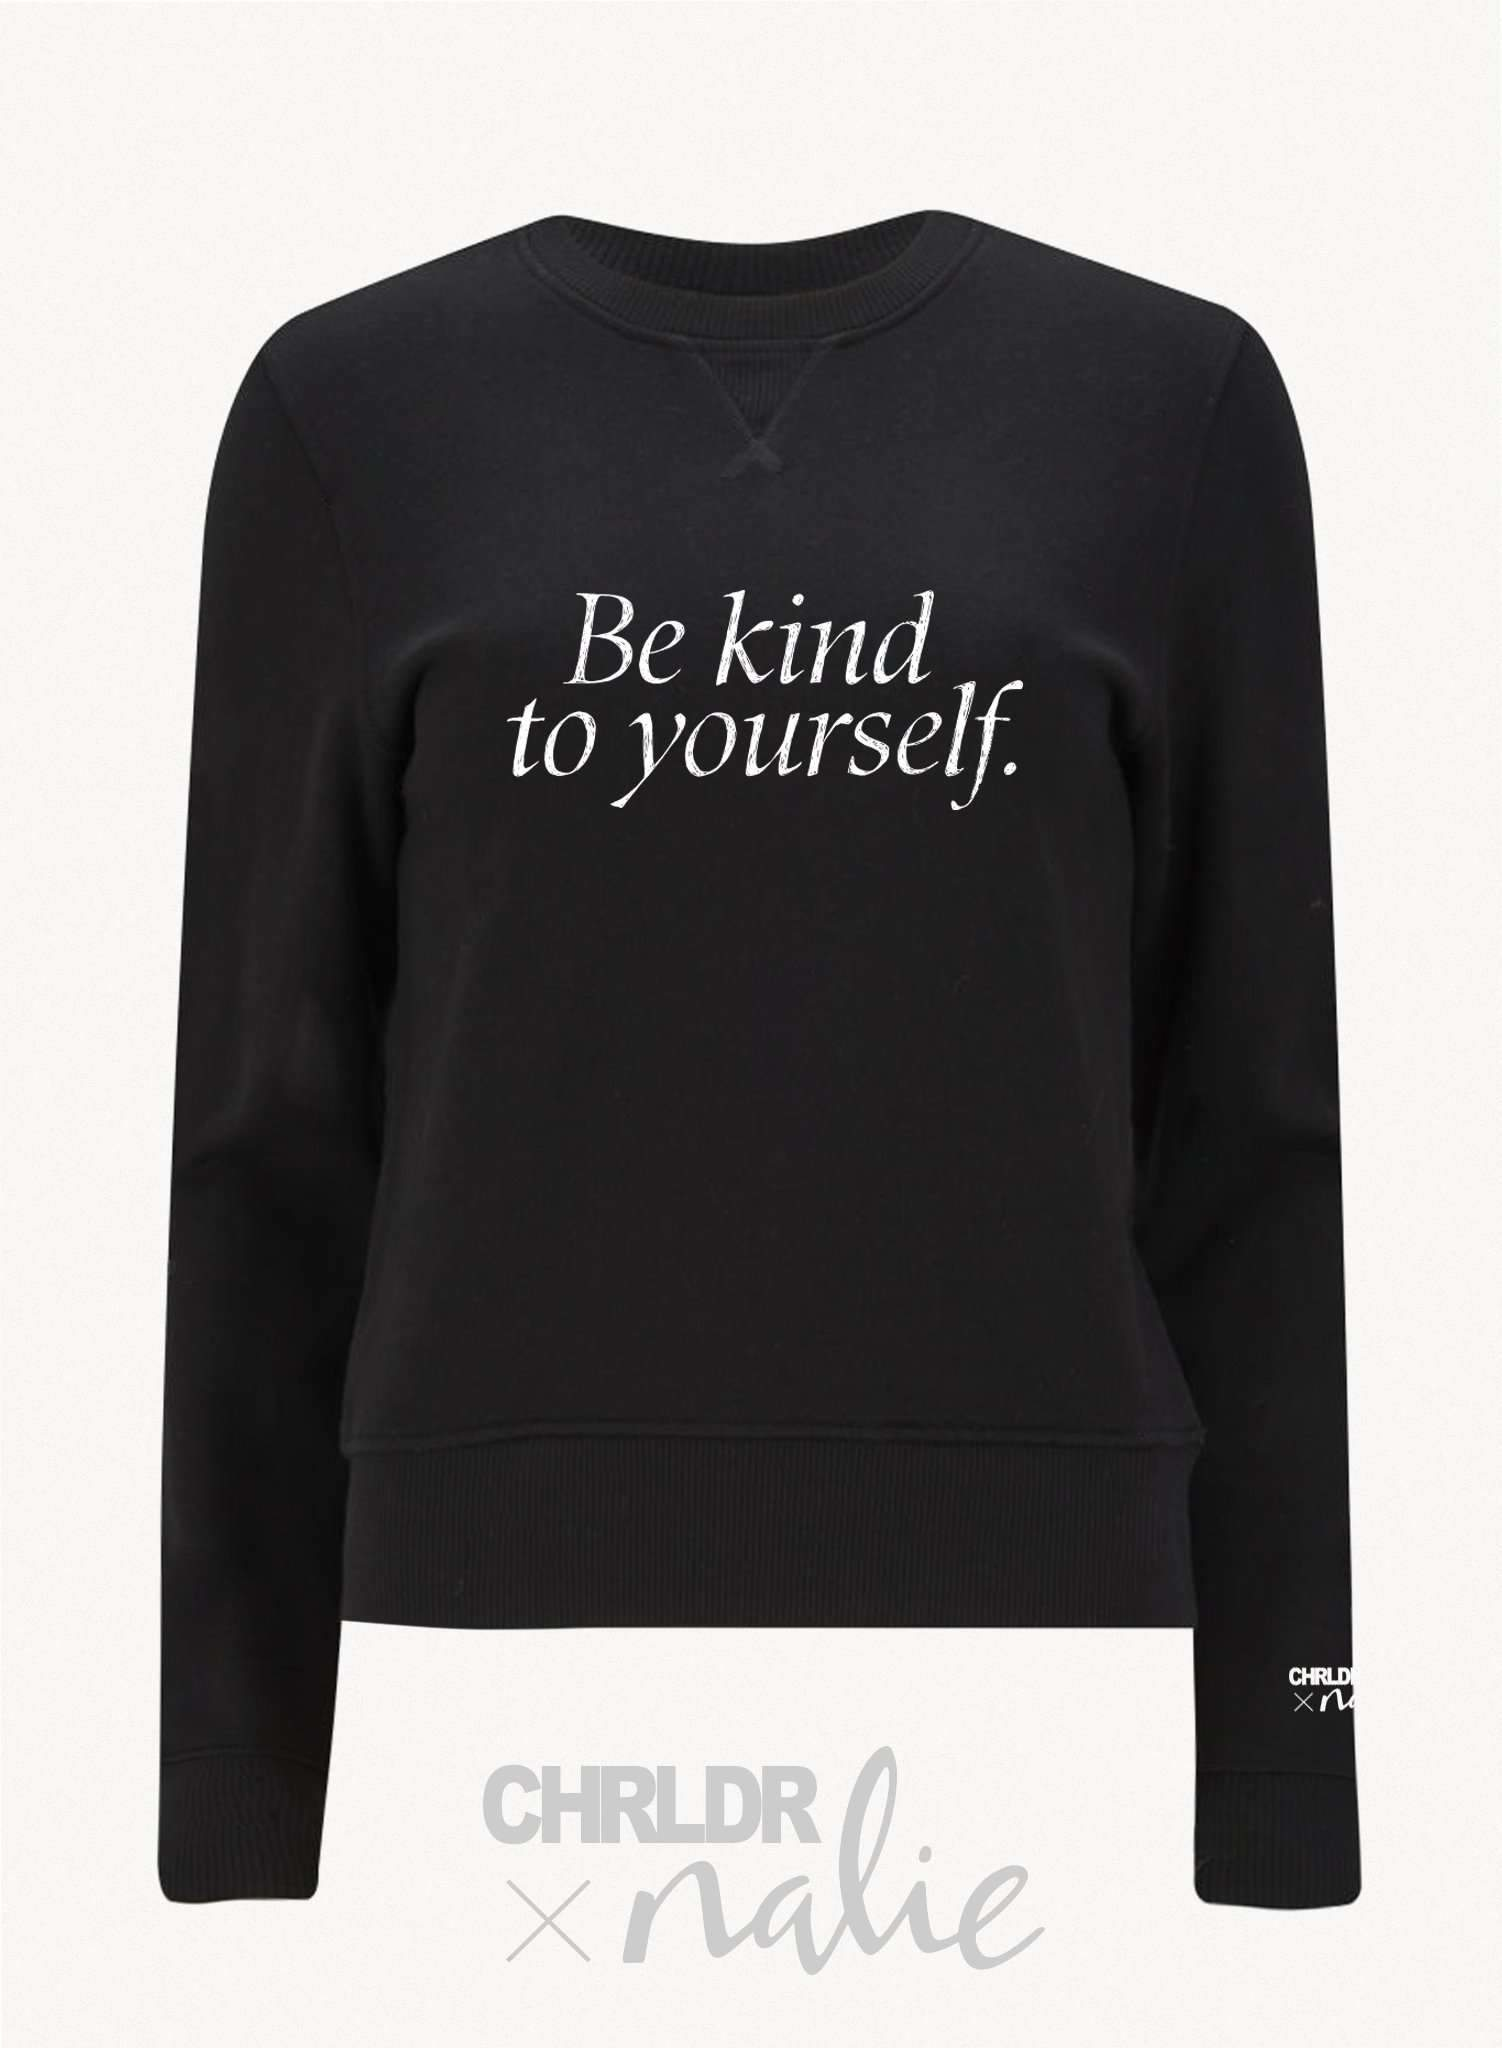 CHRLDR BE KIND TO YOURSELF — CHRLDR X Nalie Black Sweatshirt